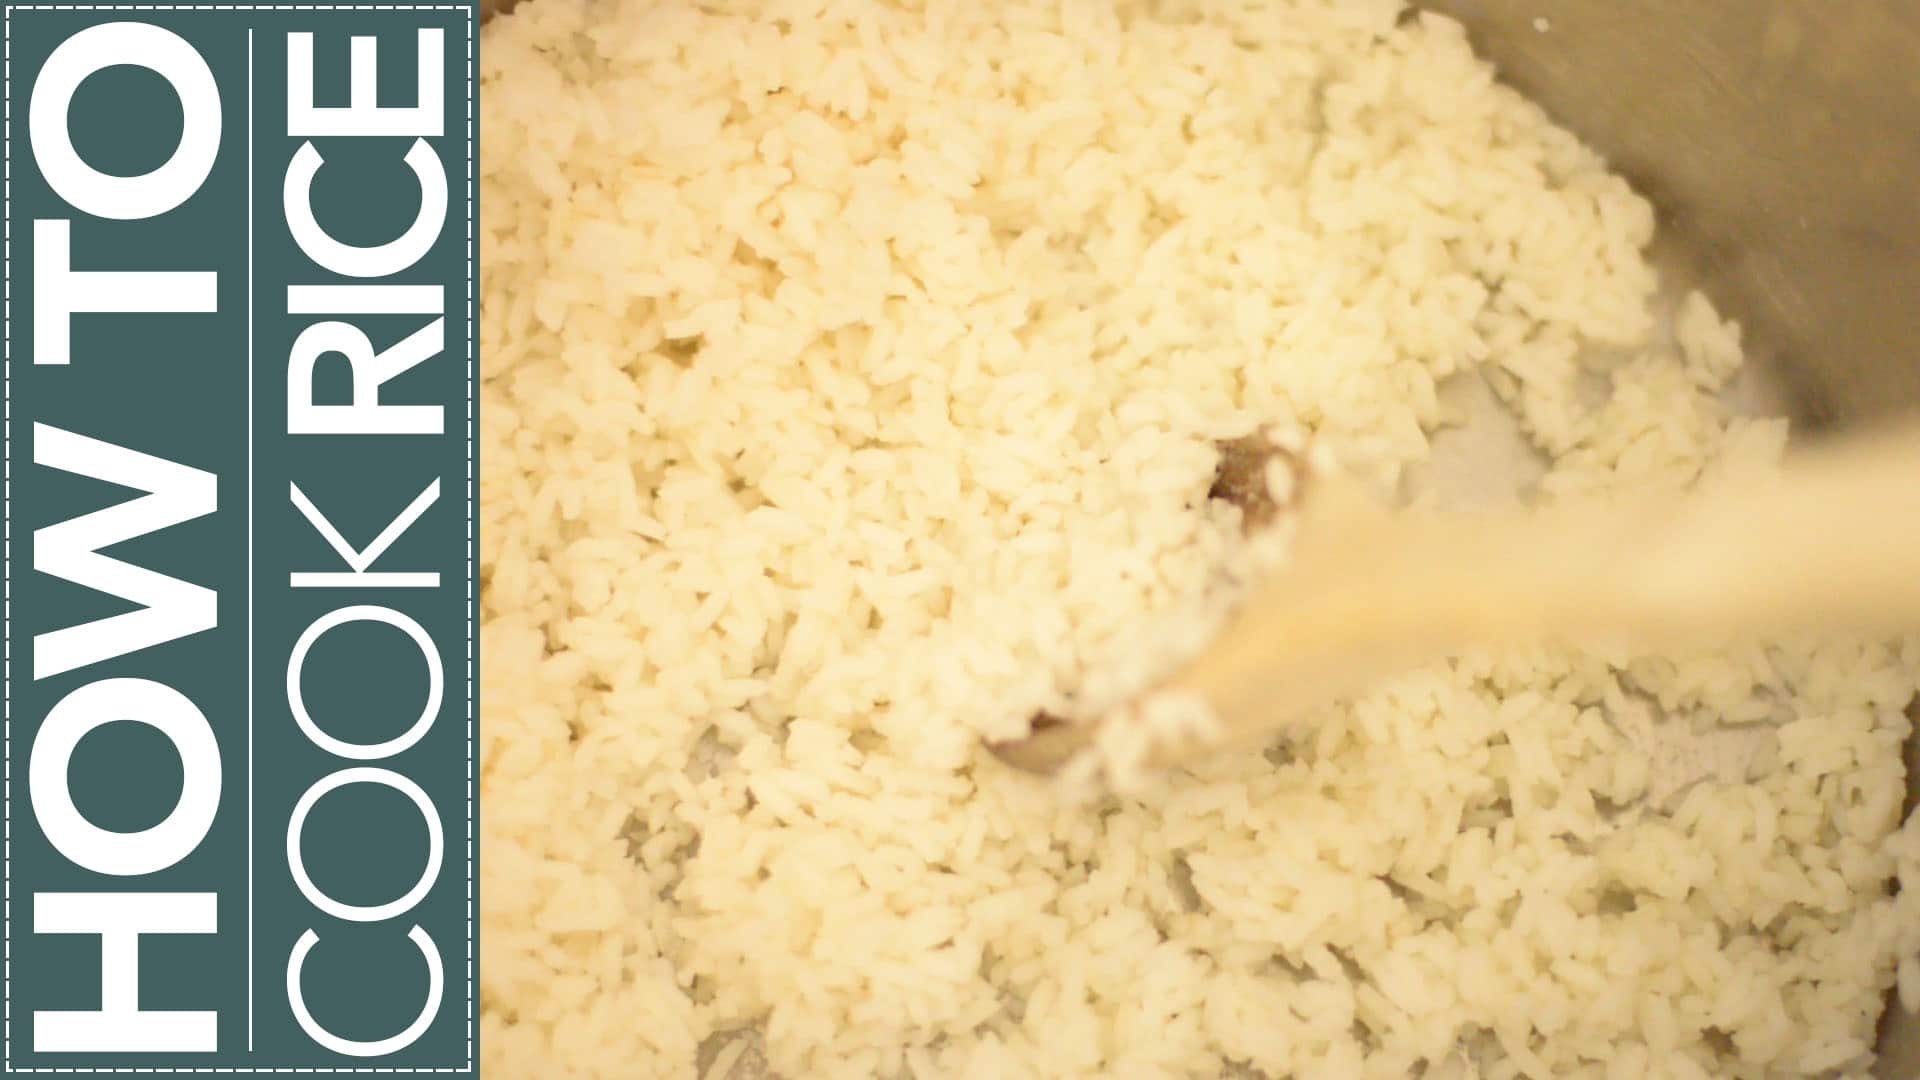 Cooking 101: How to Cook Rice